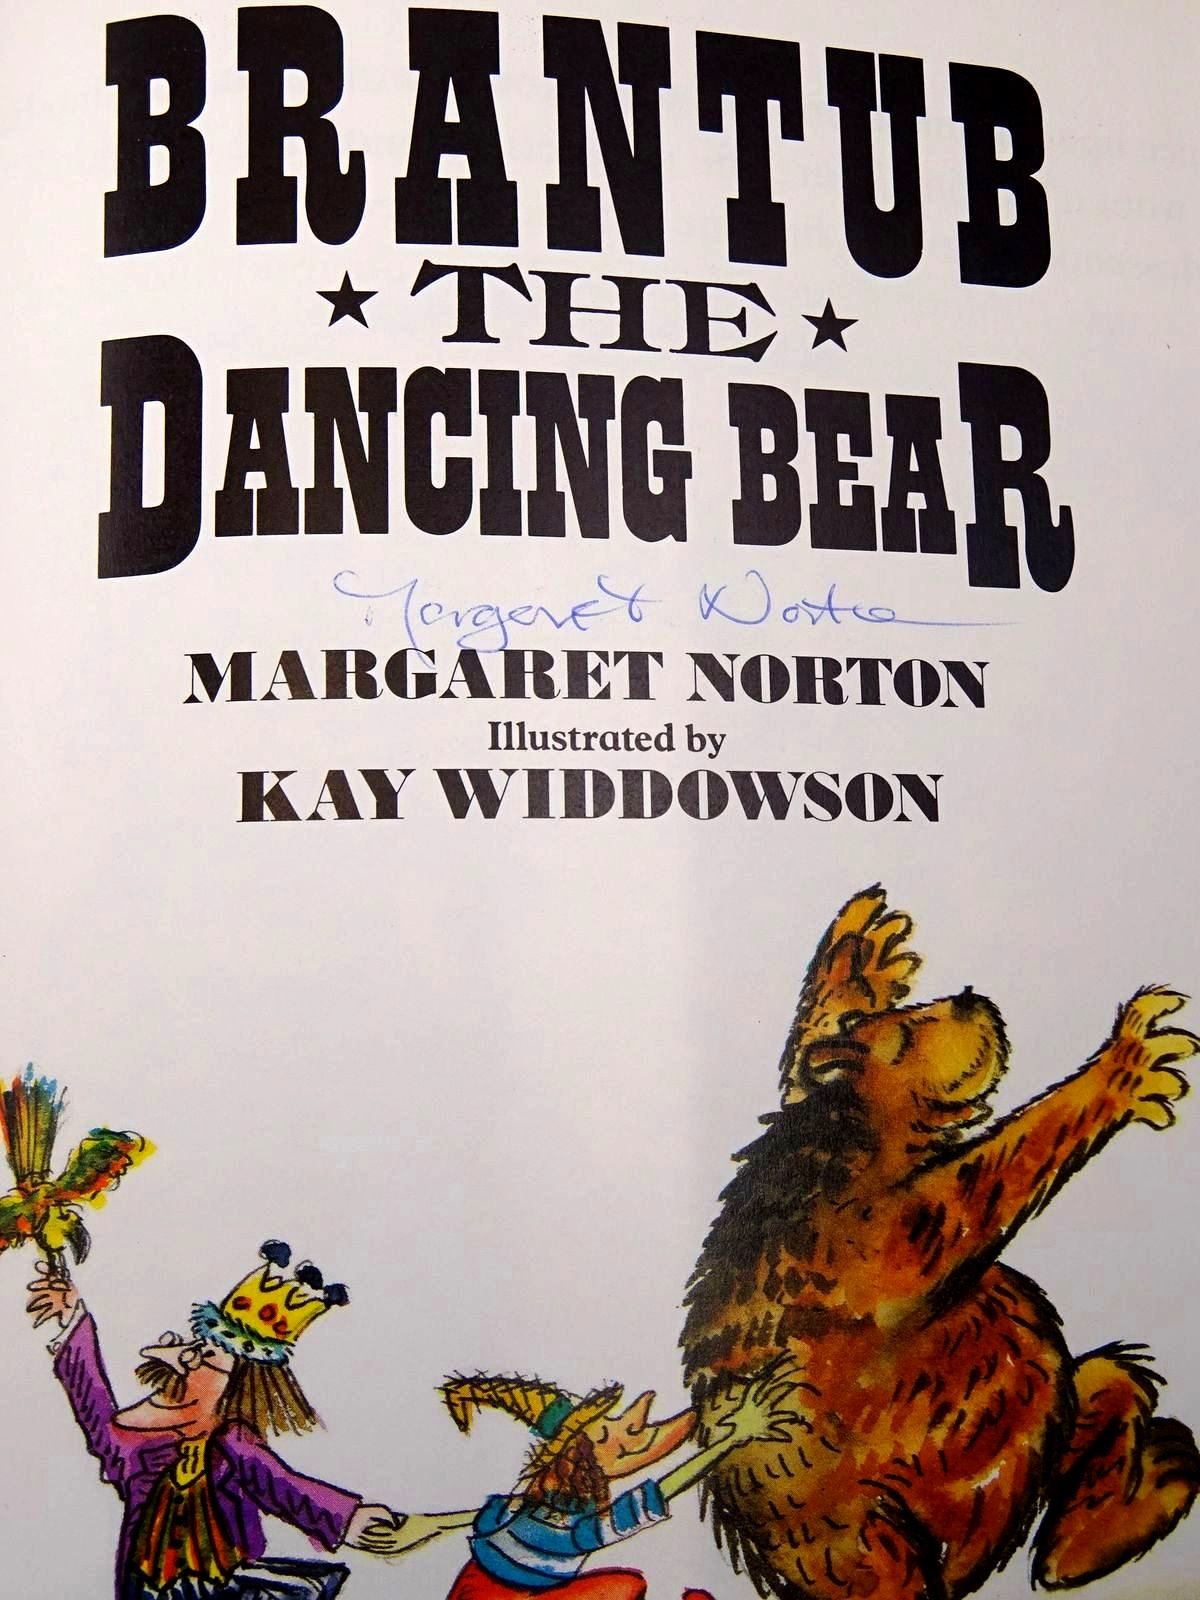 Photo of BRANTUB THE DANCING BEAR written by Norton, Margaret illustrated by Widdowson, Kay published by The Bodley Head Children's Books (STOCK CODE: 2126314)  for sale by Stella & Rose's Books